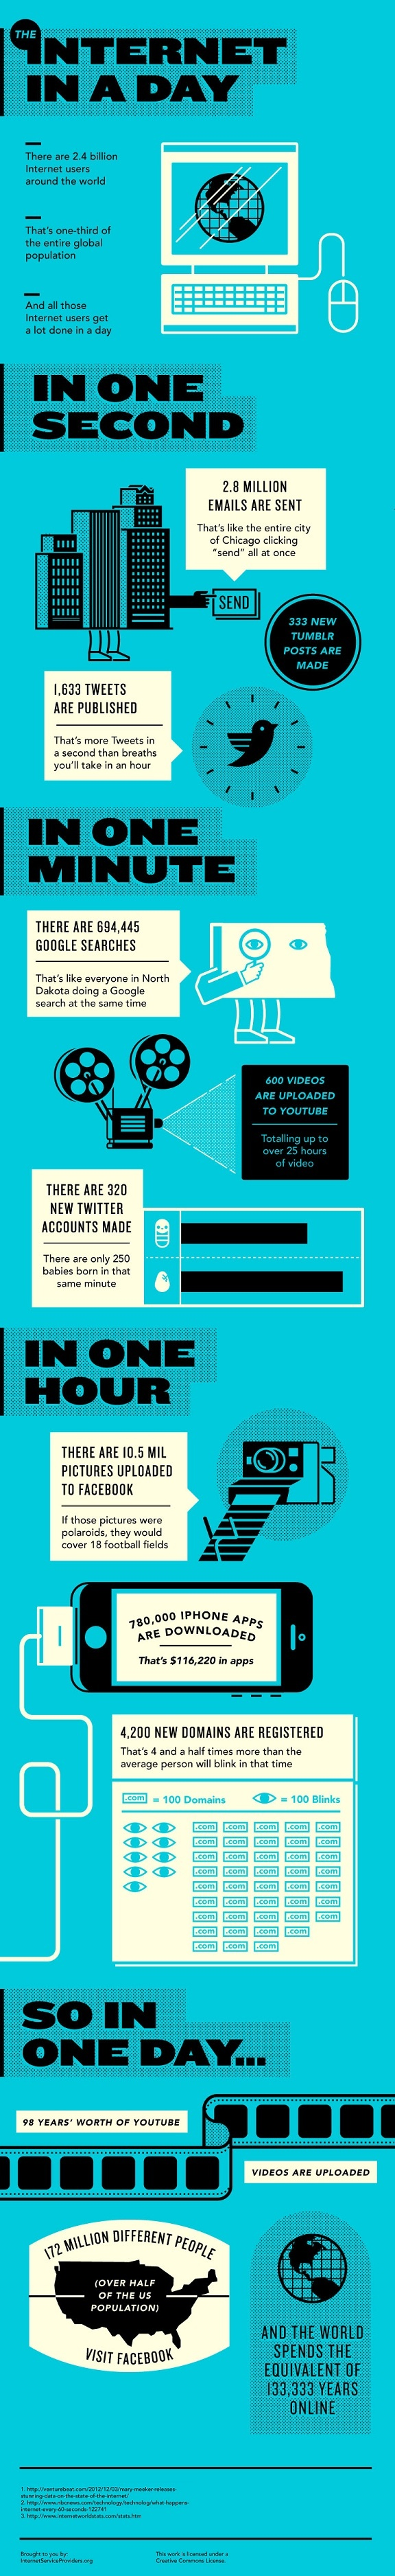 Some amazing facts about how often we use the internet. Are you getting enough?